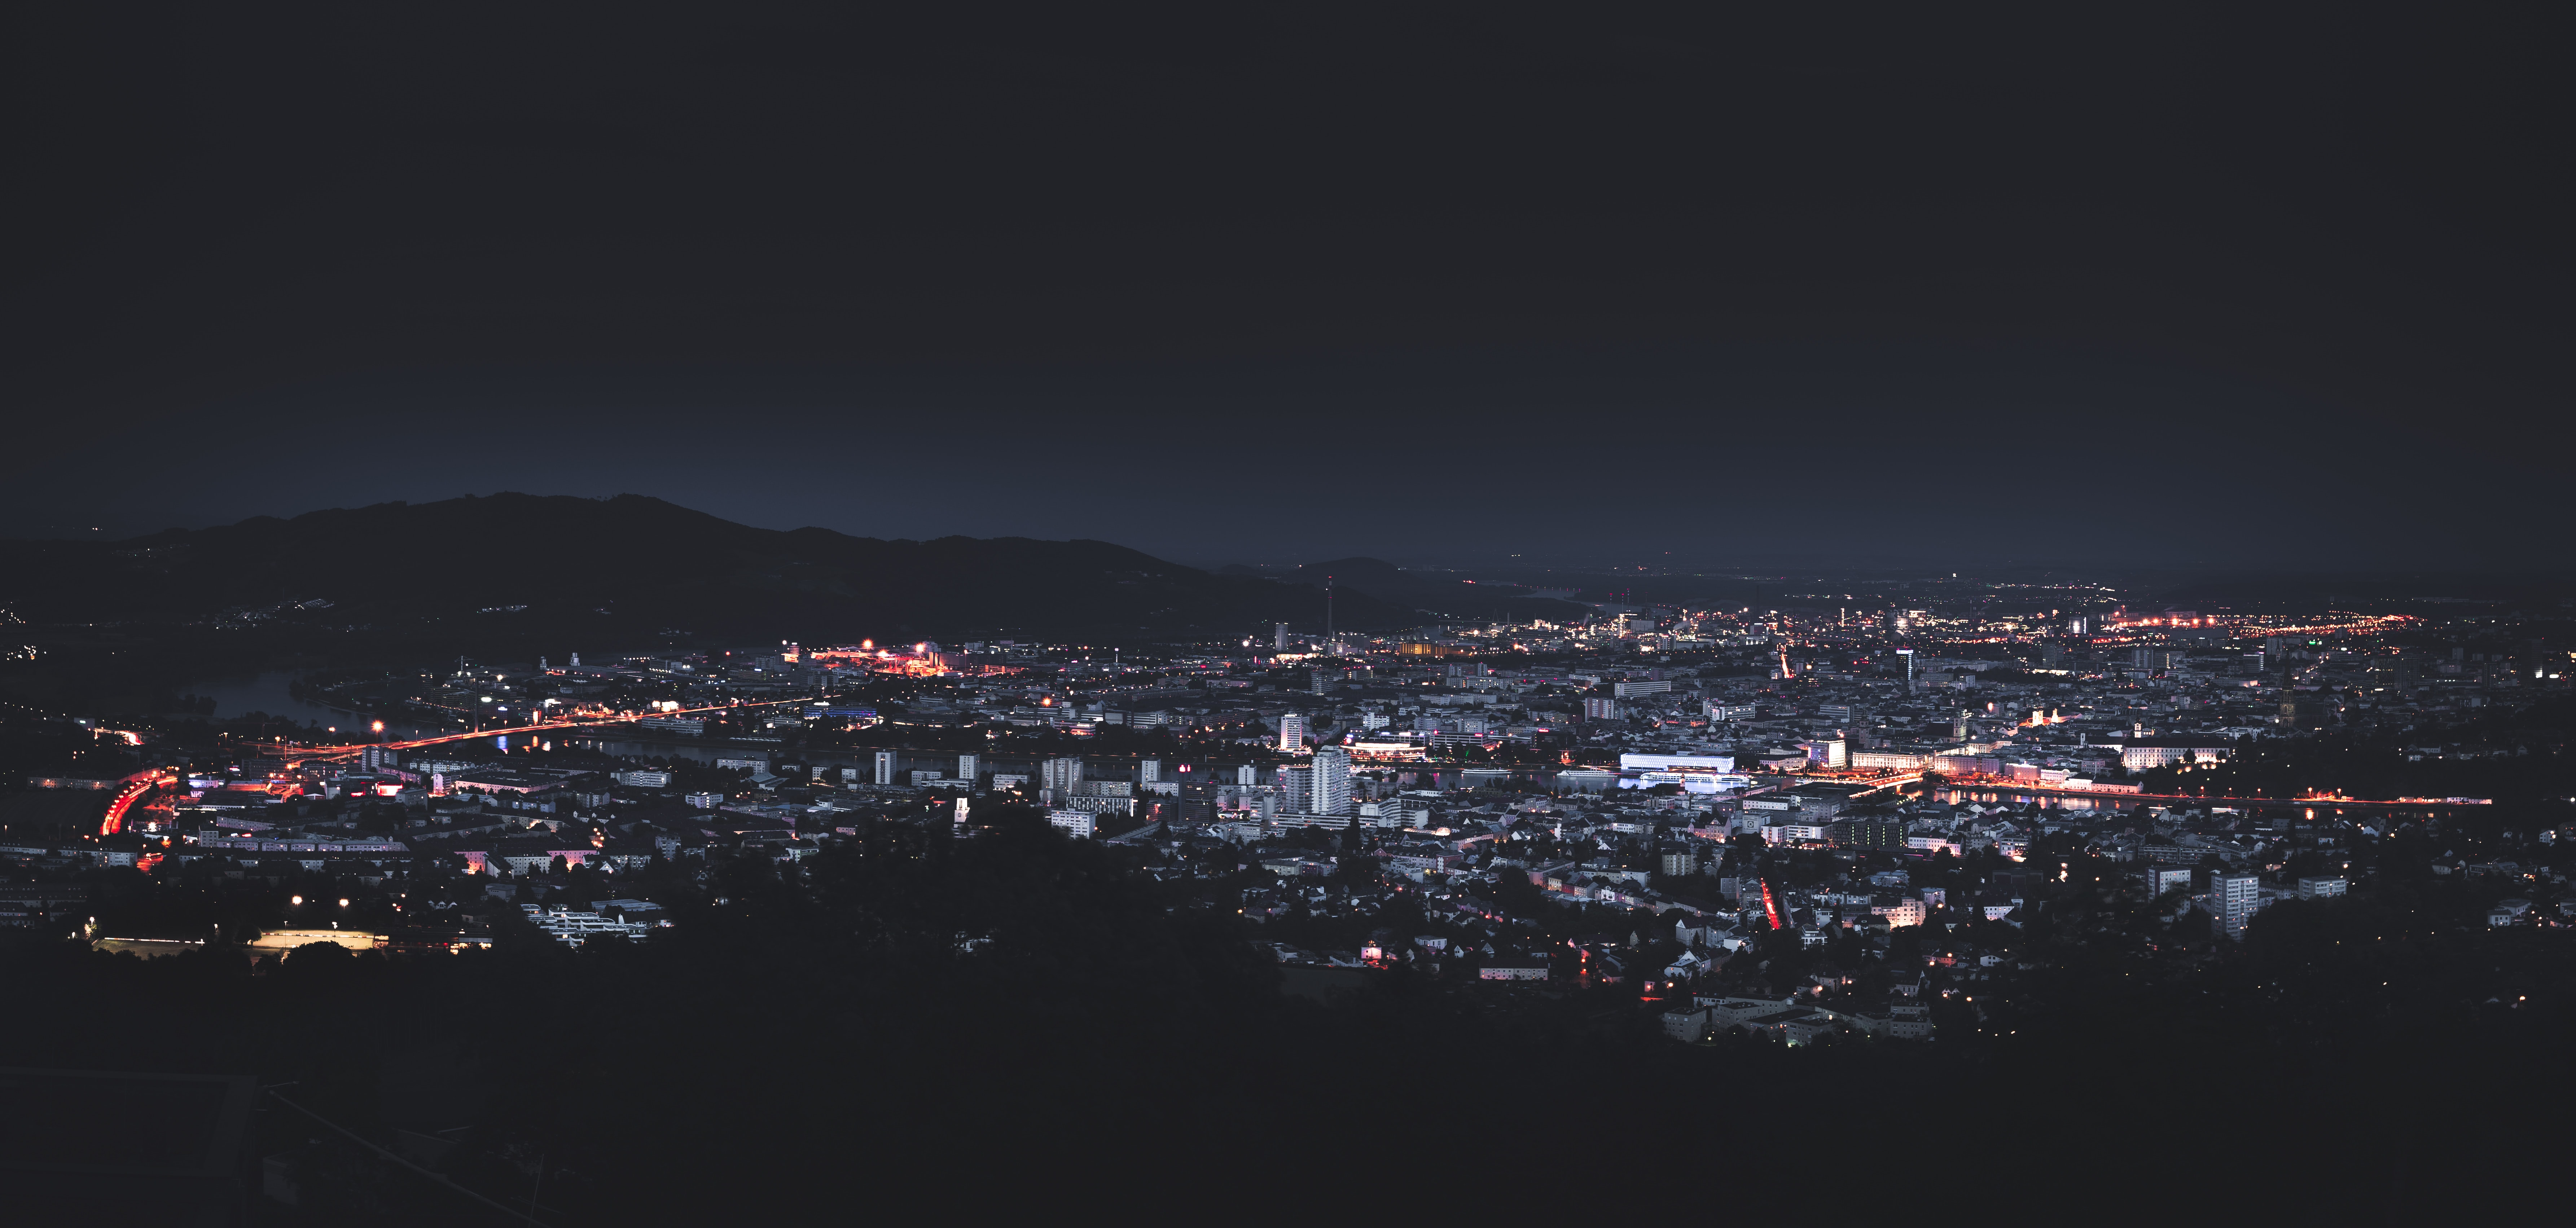 city skyline photography during nighttime